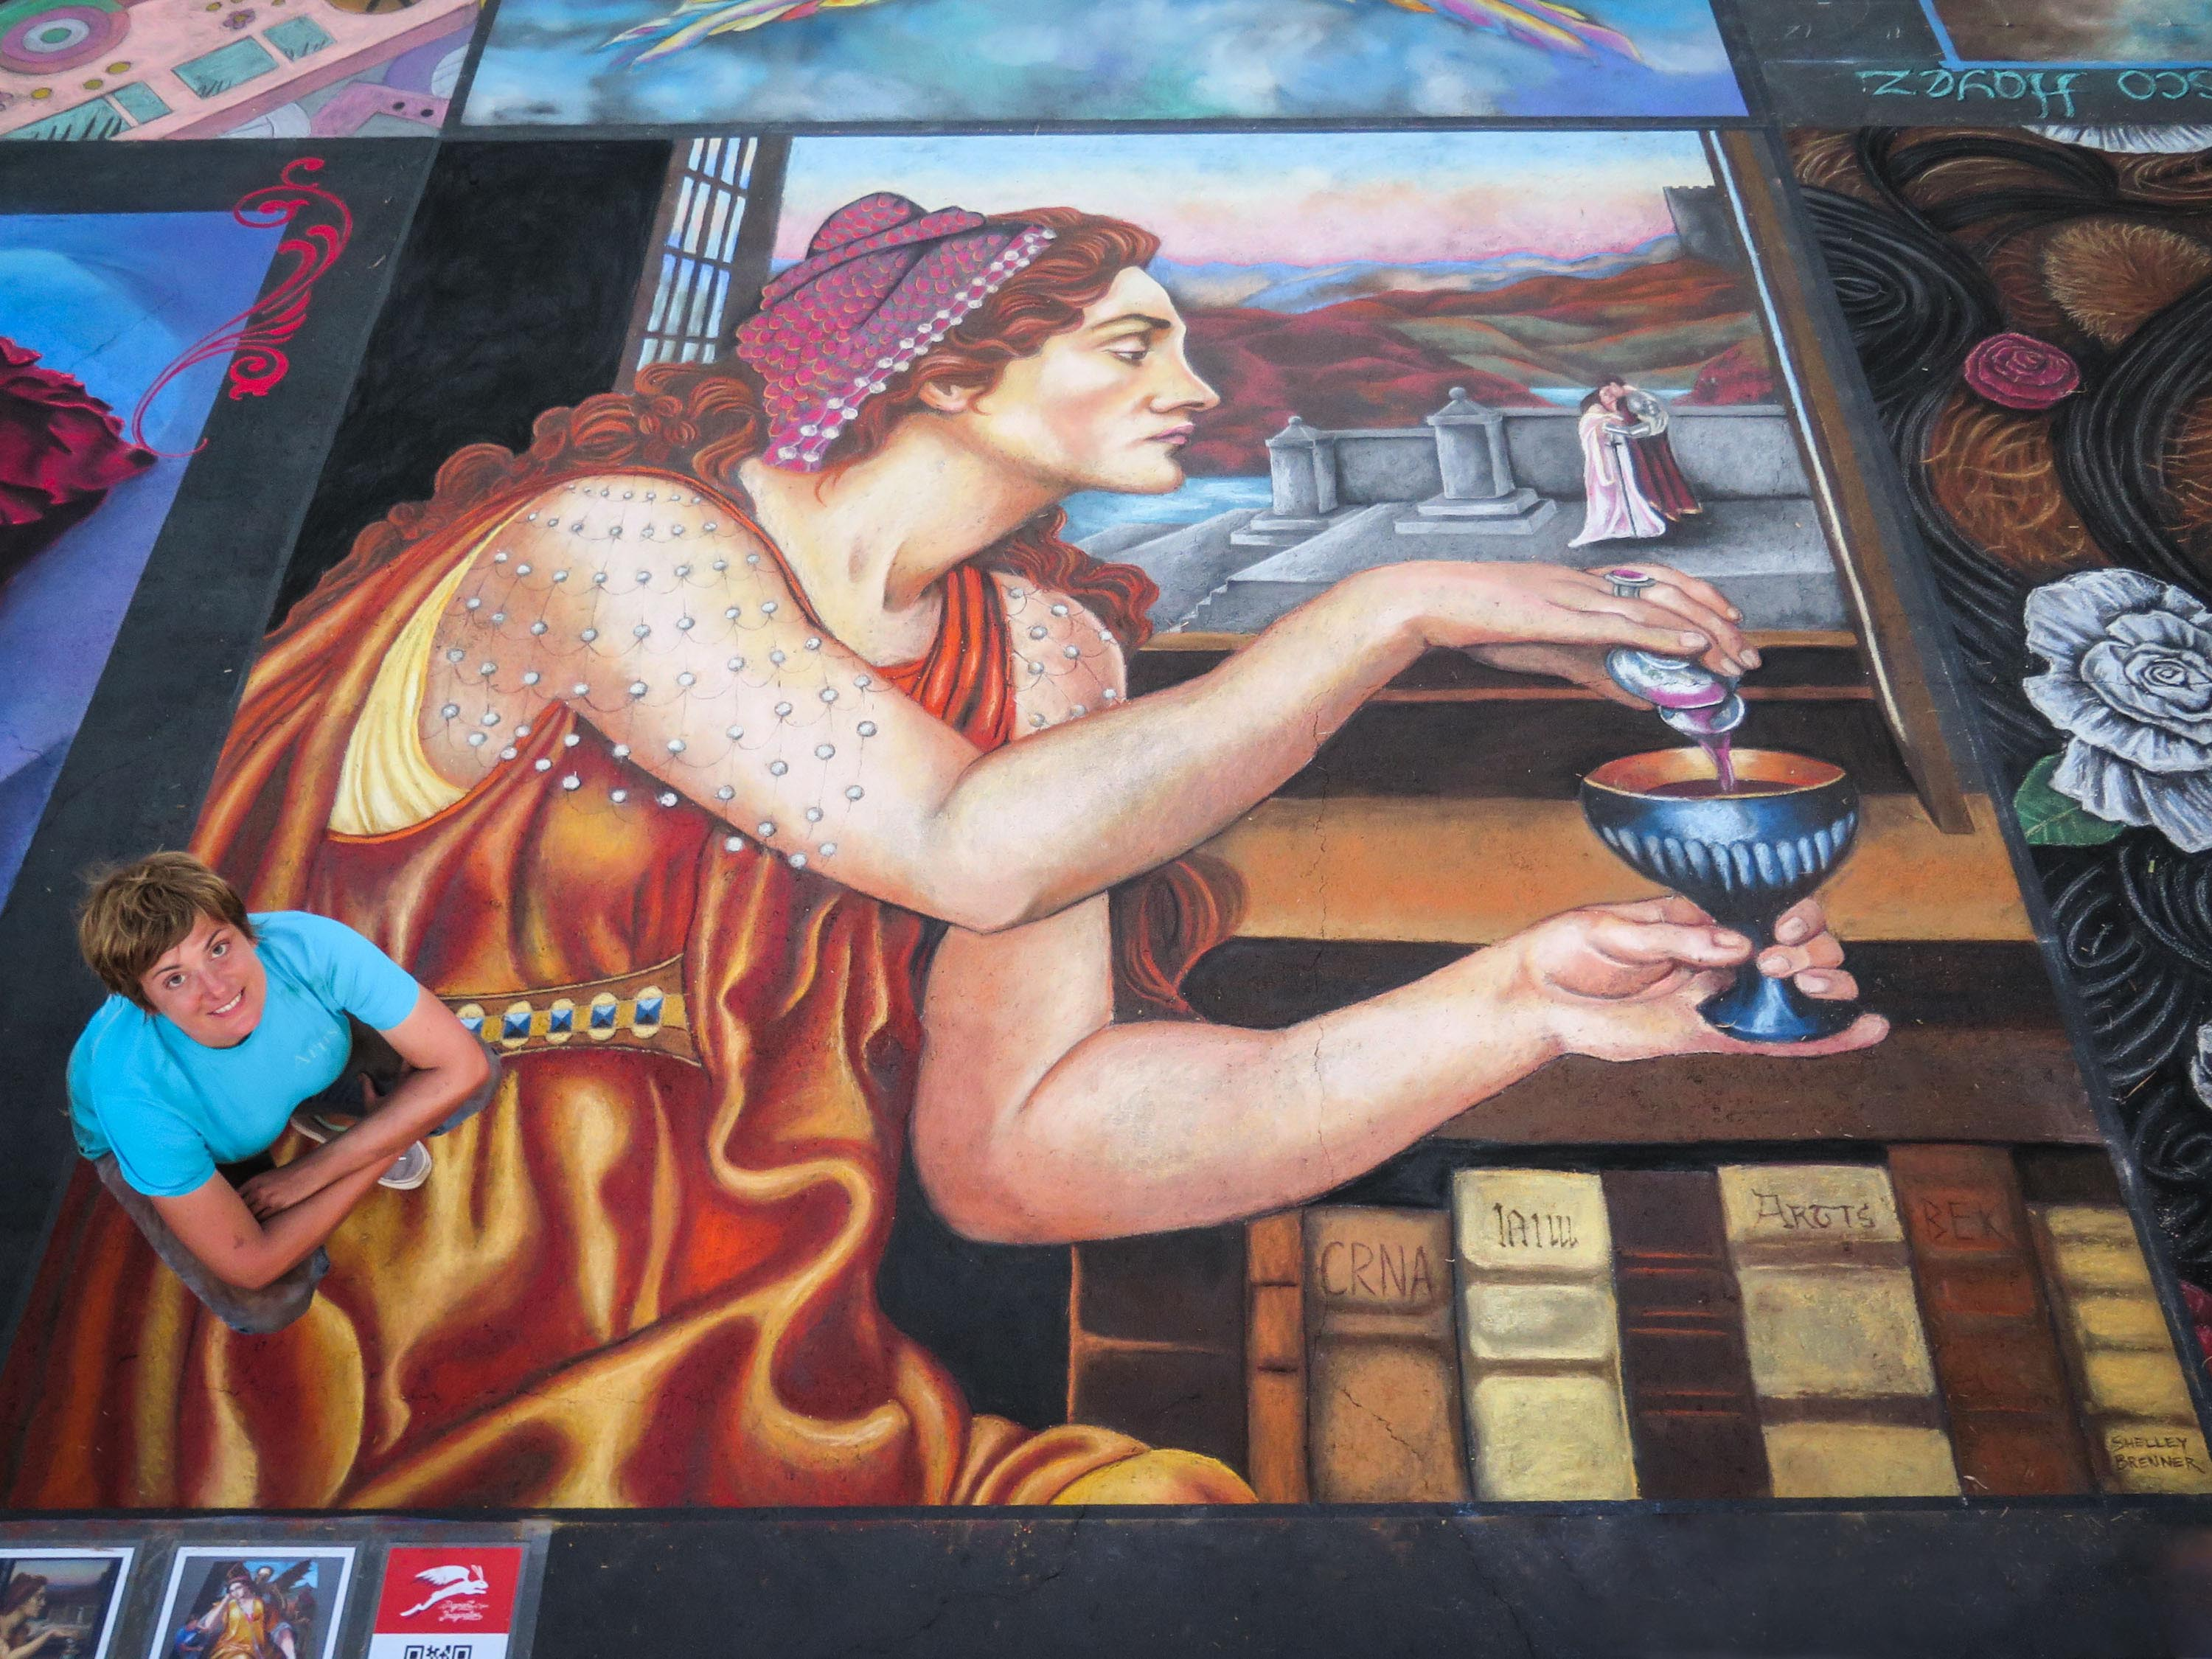 2016 International Chalk Festival, Venice, FL